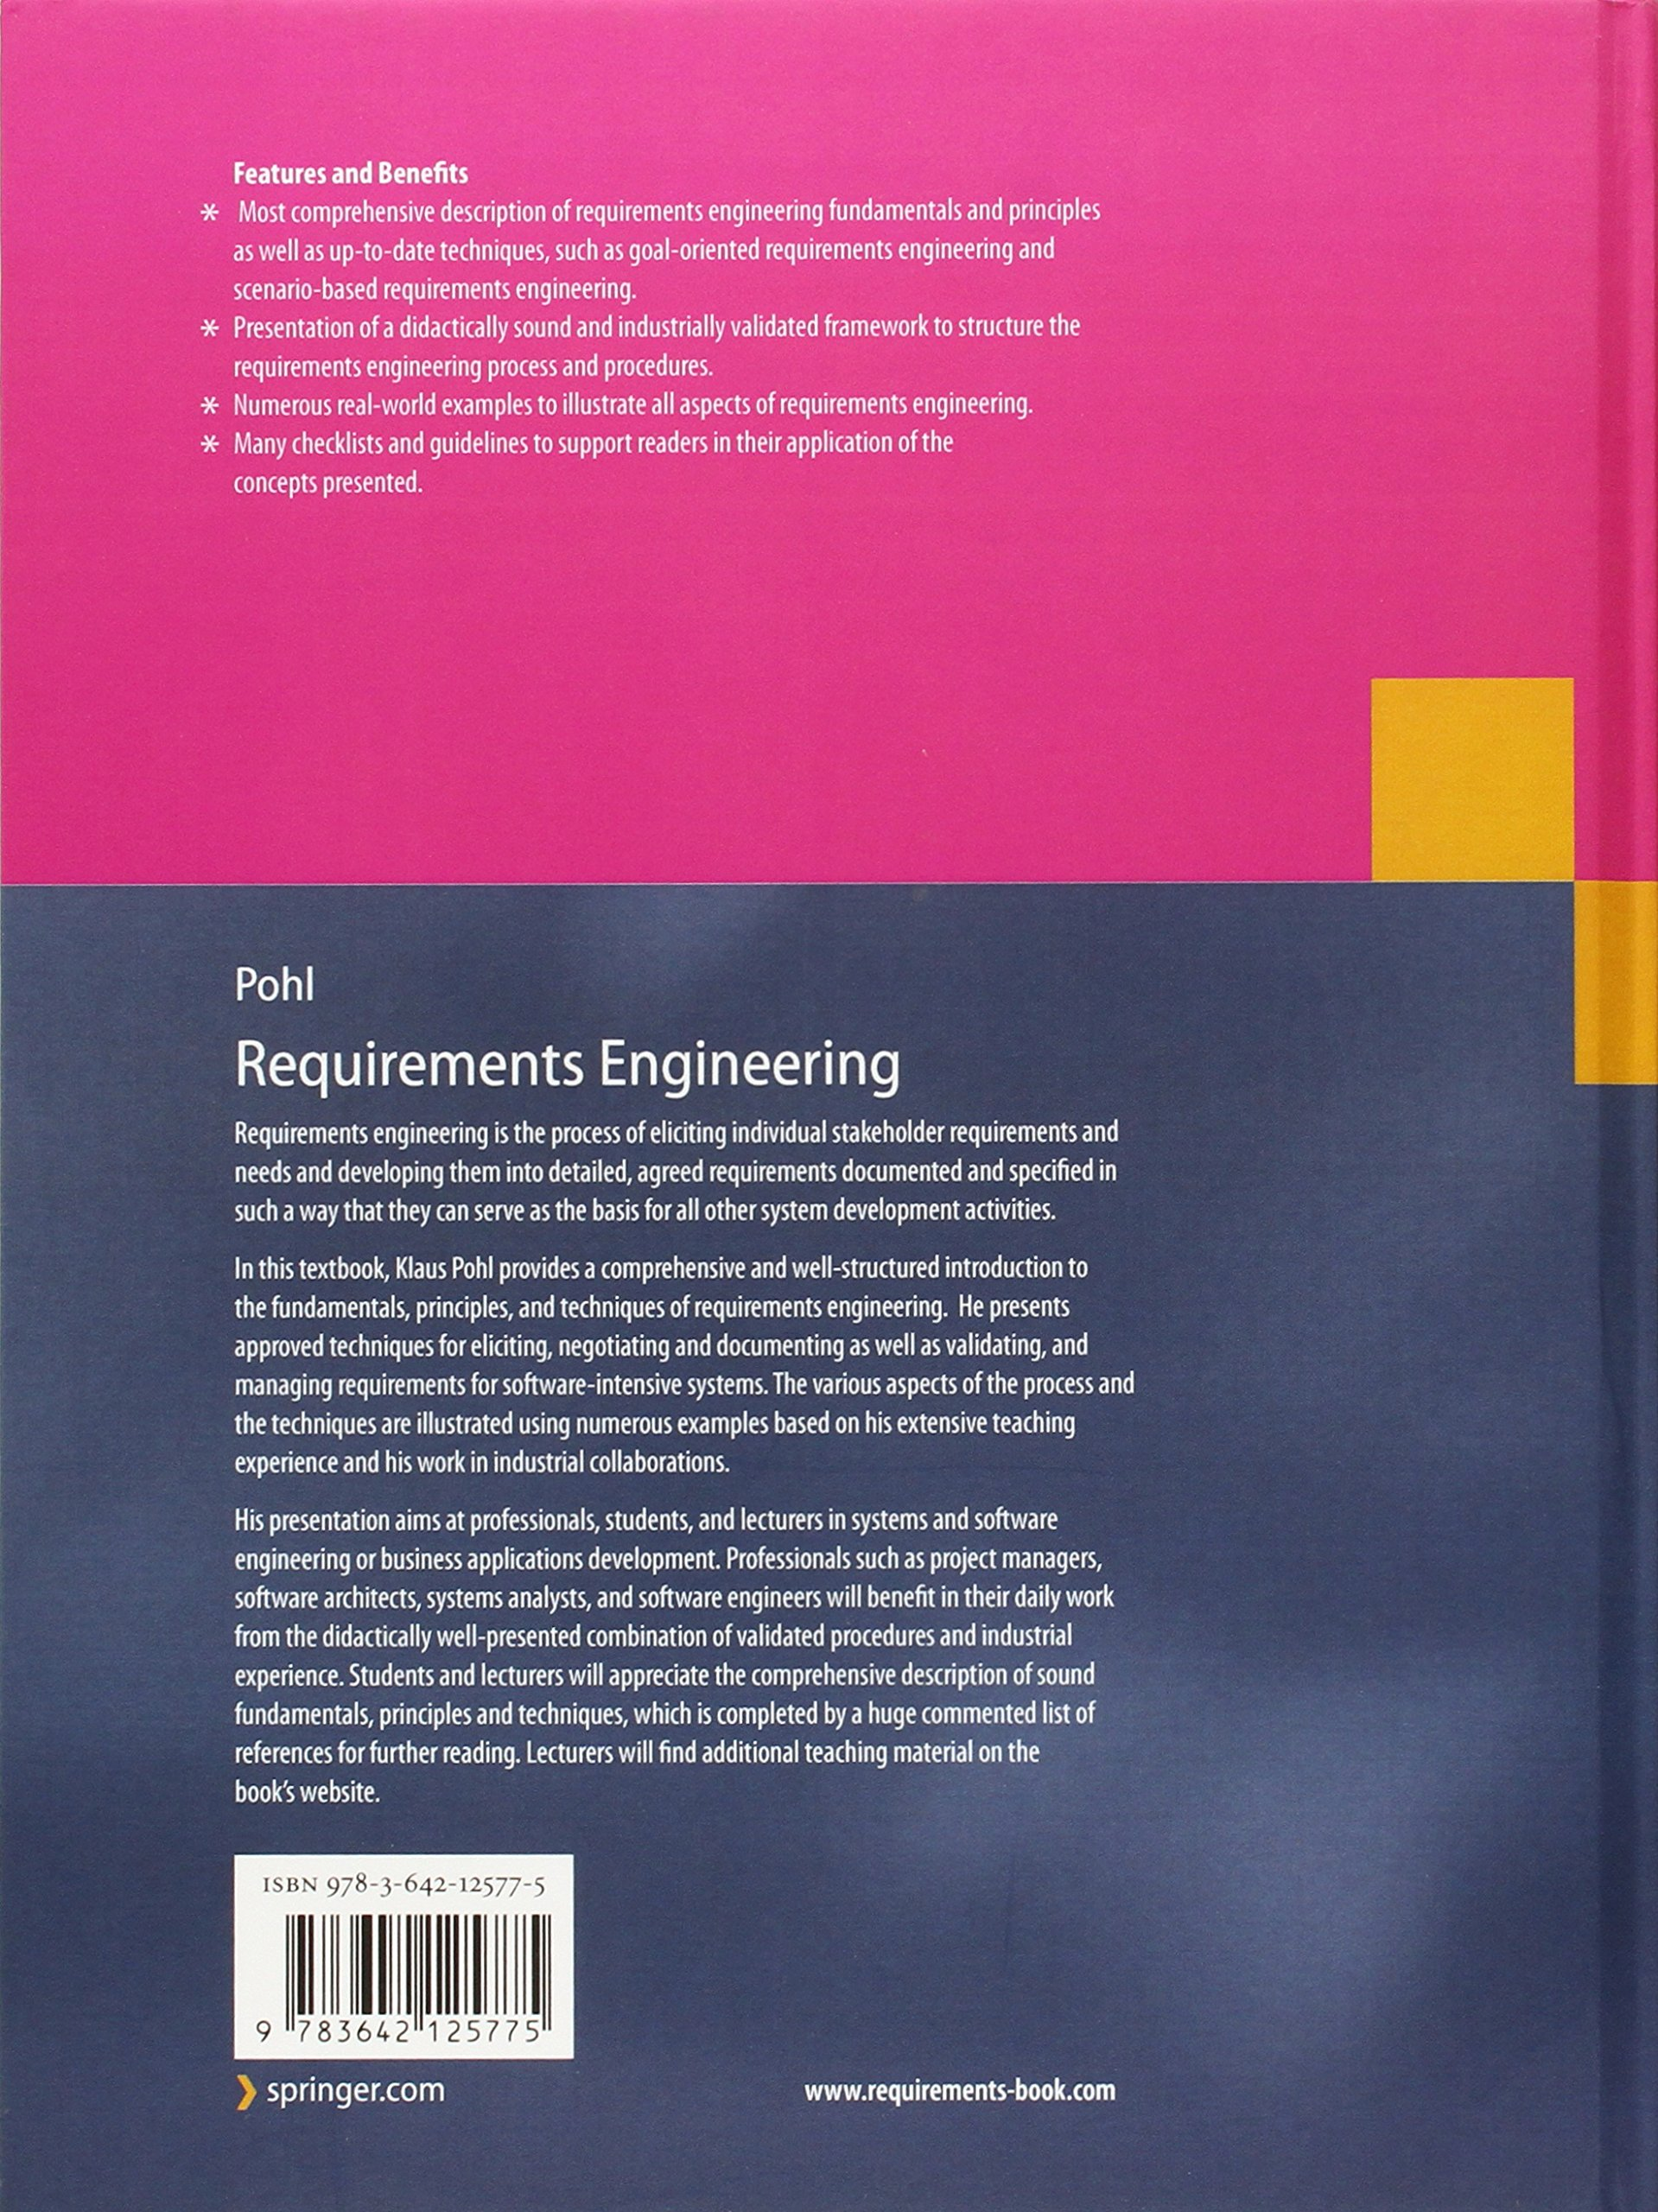 Requirements Engineering: Fundamentals, Principles, and Techniques by Springer